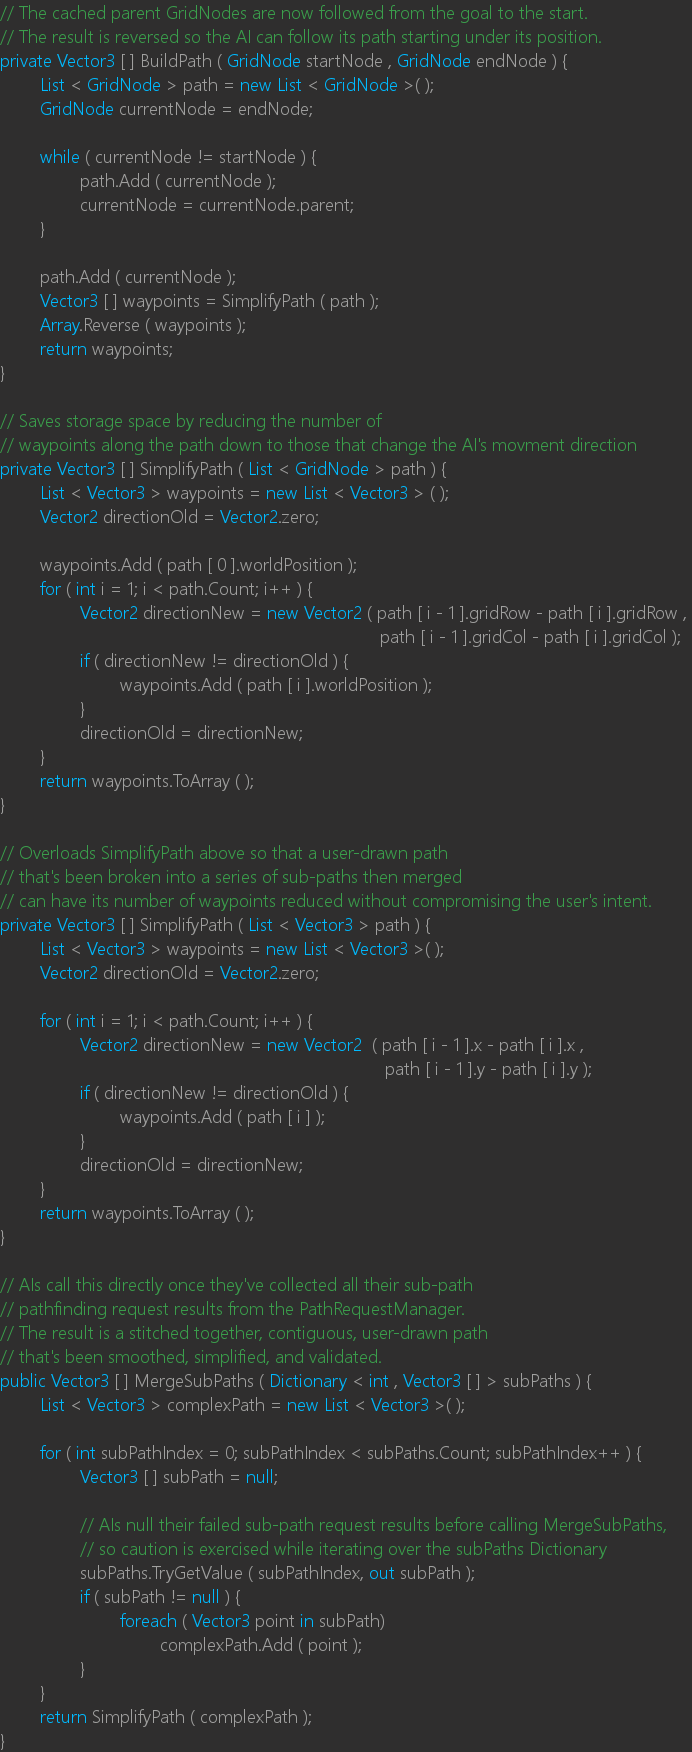 Helper functions build the path found by A*